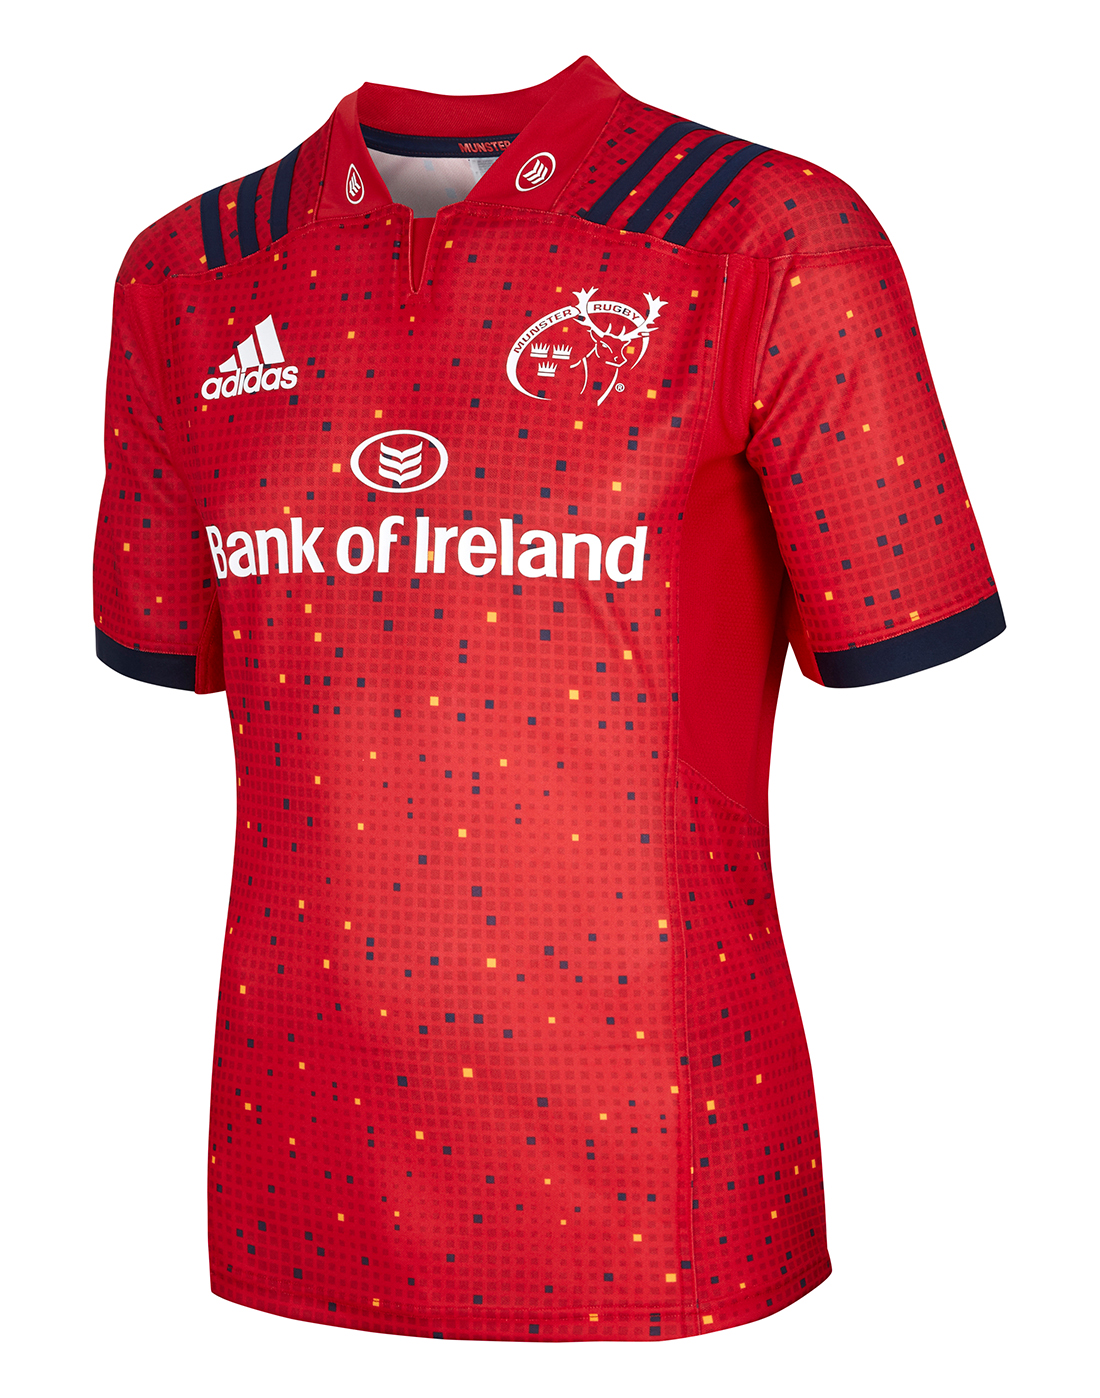 cf5130a4205 Munster 2018/19 European Jersey | adidas | Life Style Sports